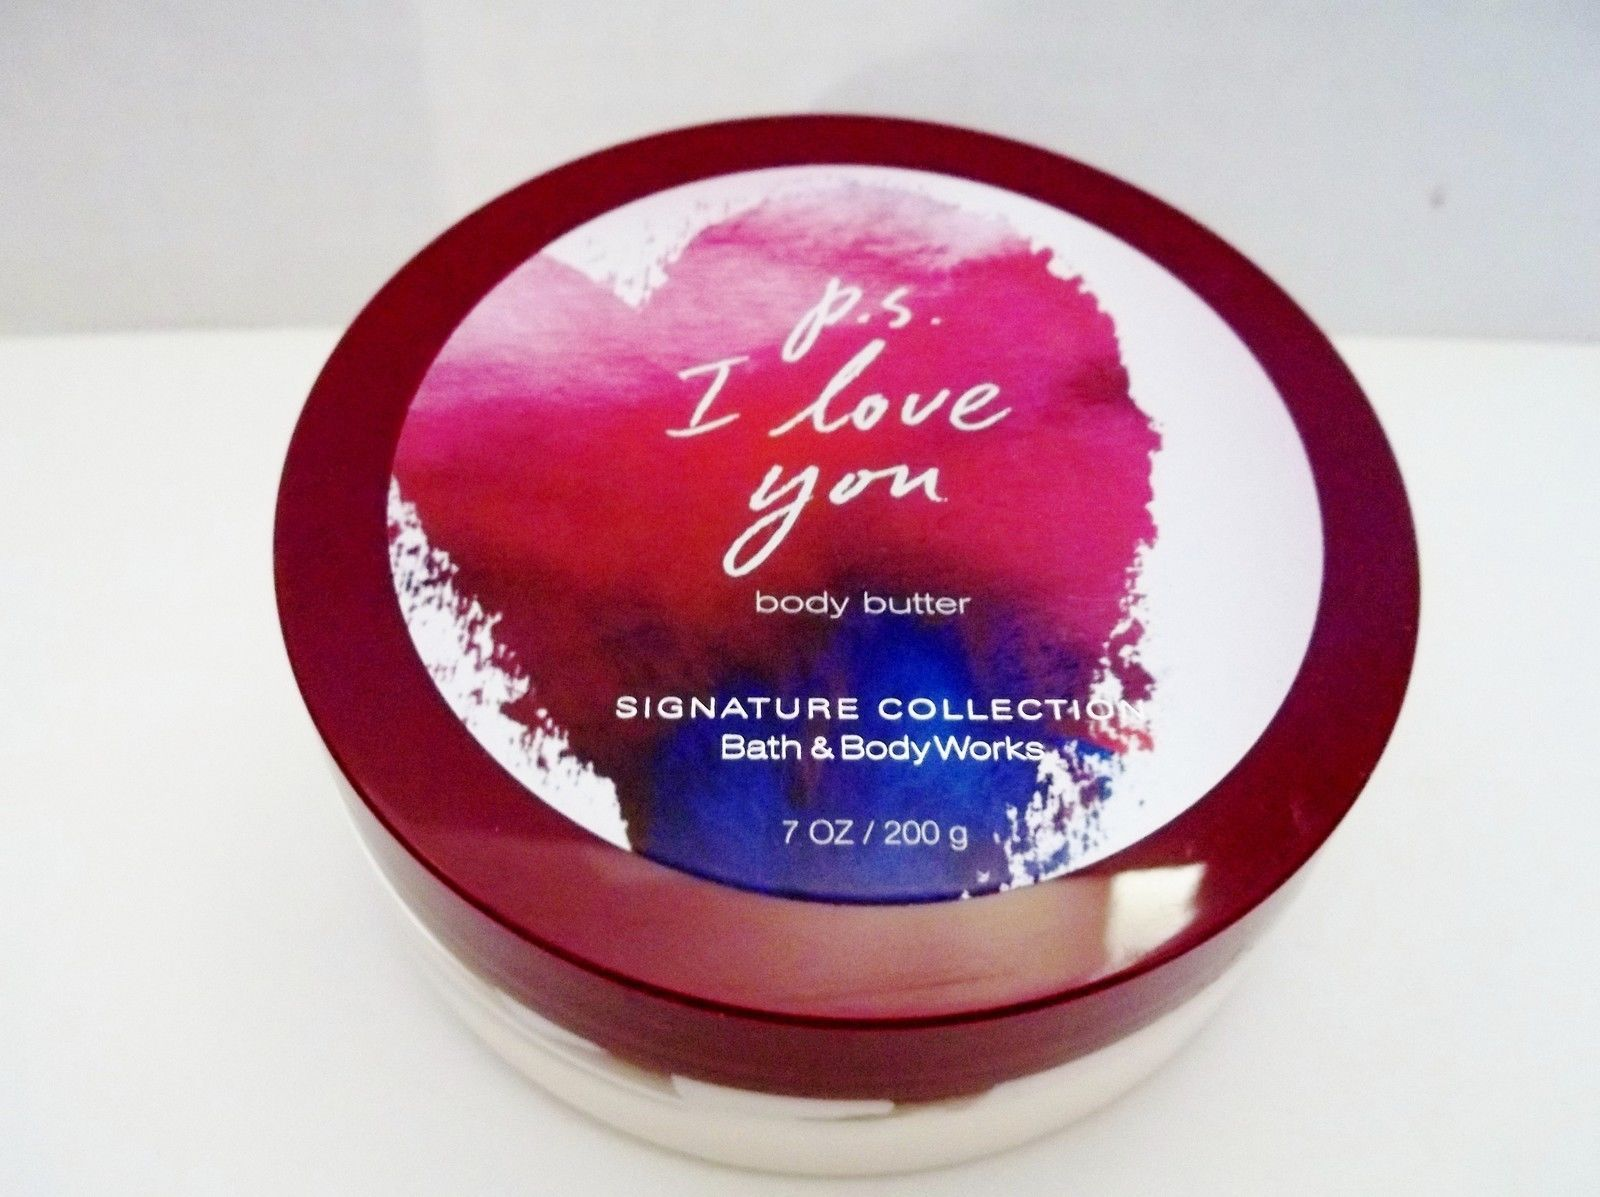 Bath & Body Works P.S. I Love You Body Butter 7 oz / 200 g